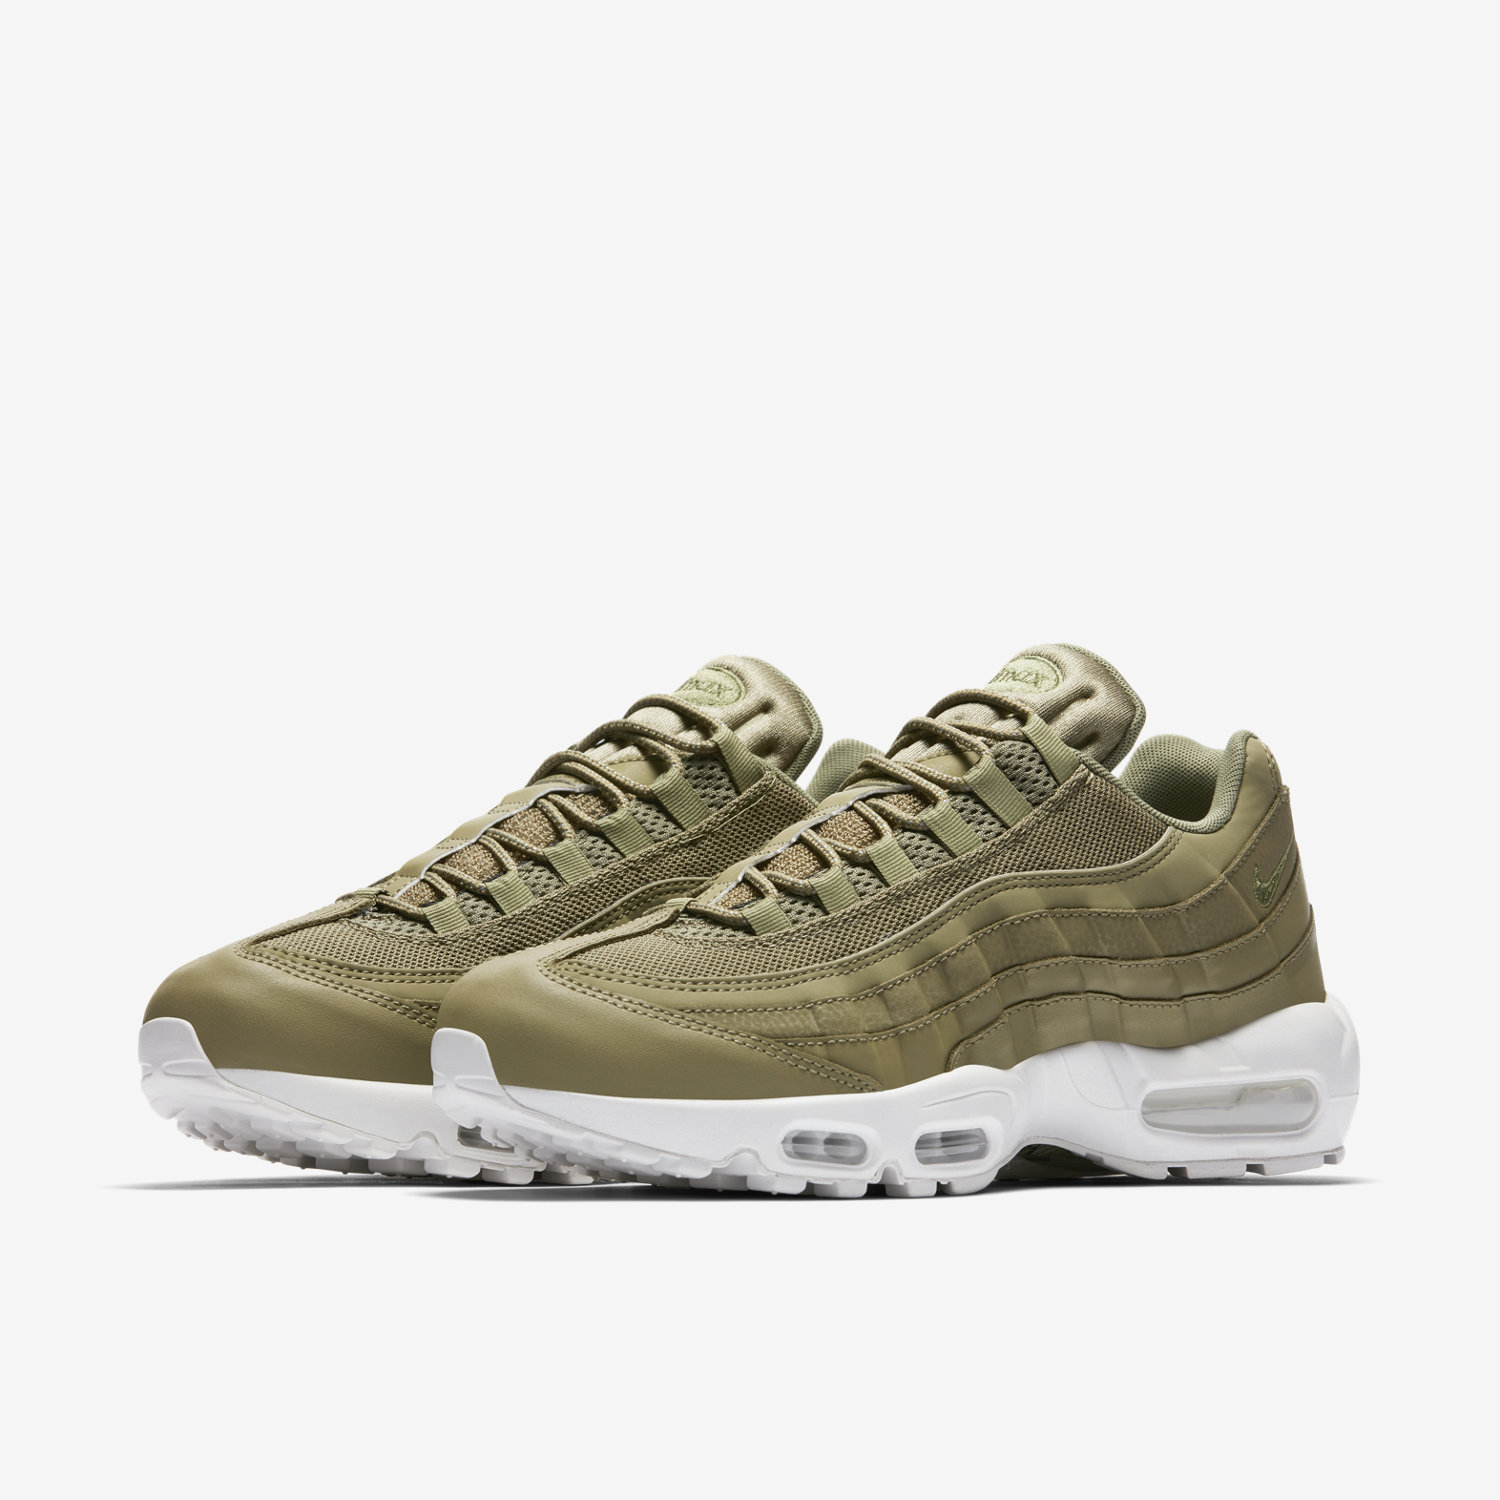 low priced 6f8a1 3f732 ... nike air max 95 custom package by originals ...